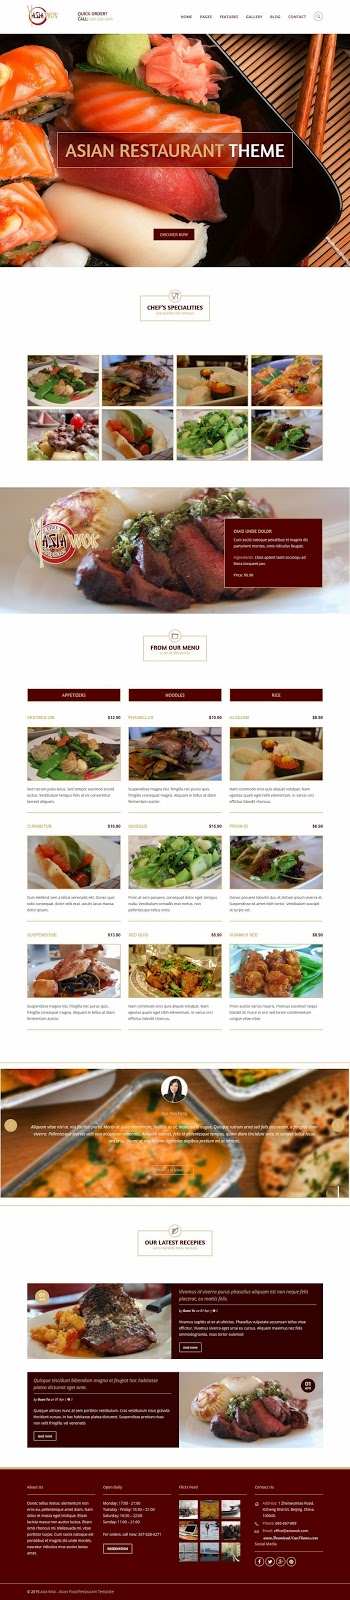 Best Responsive Restaurant WordPress Theme